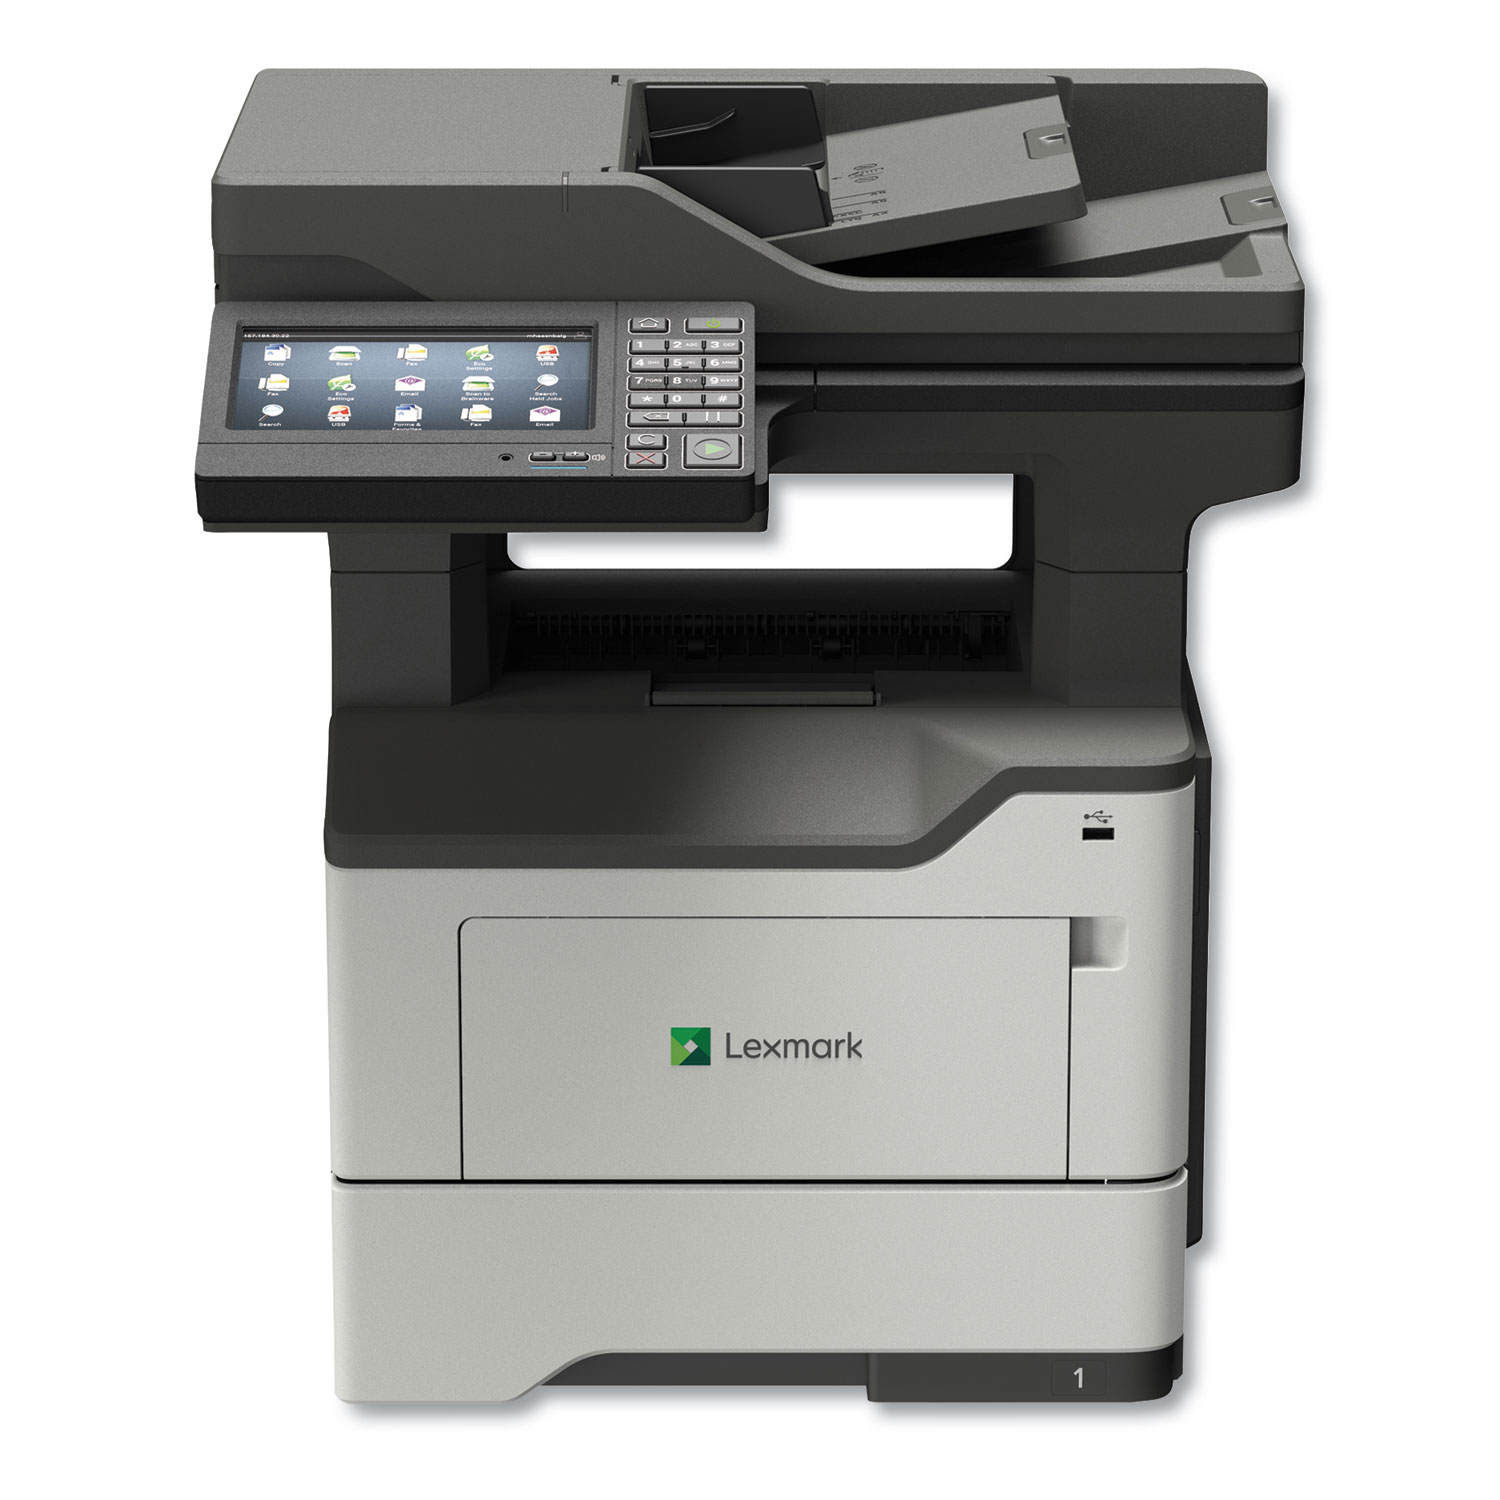 MX622ADHE Printer, Copy/Fax/Print/Scan